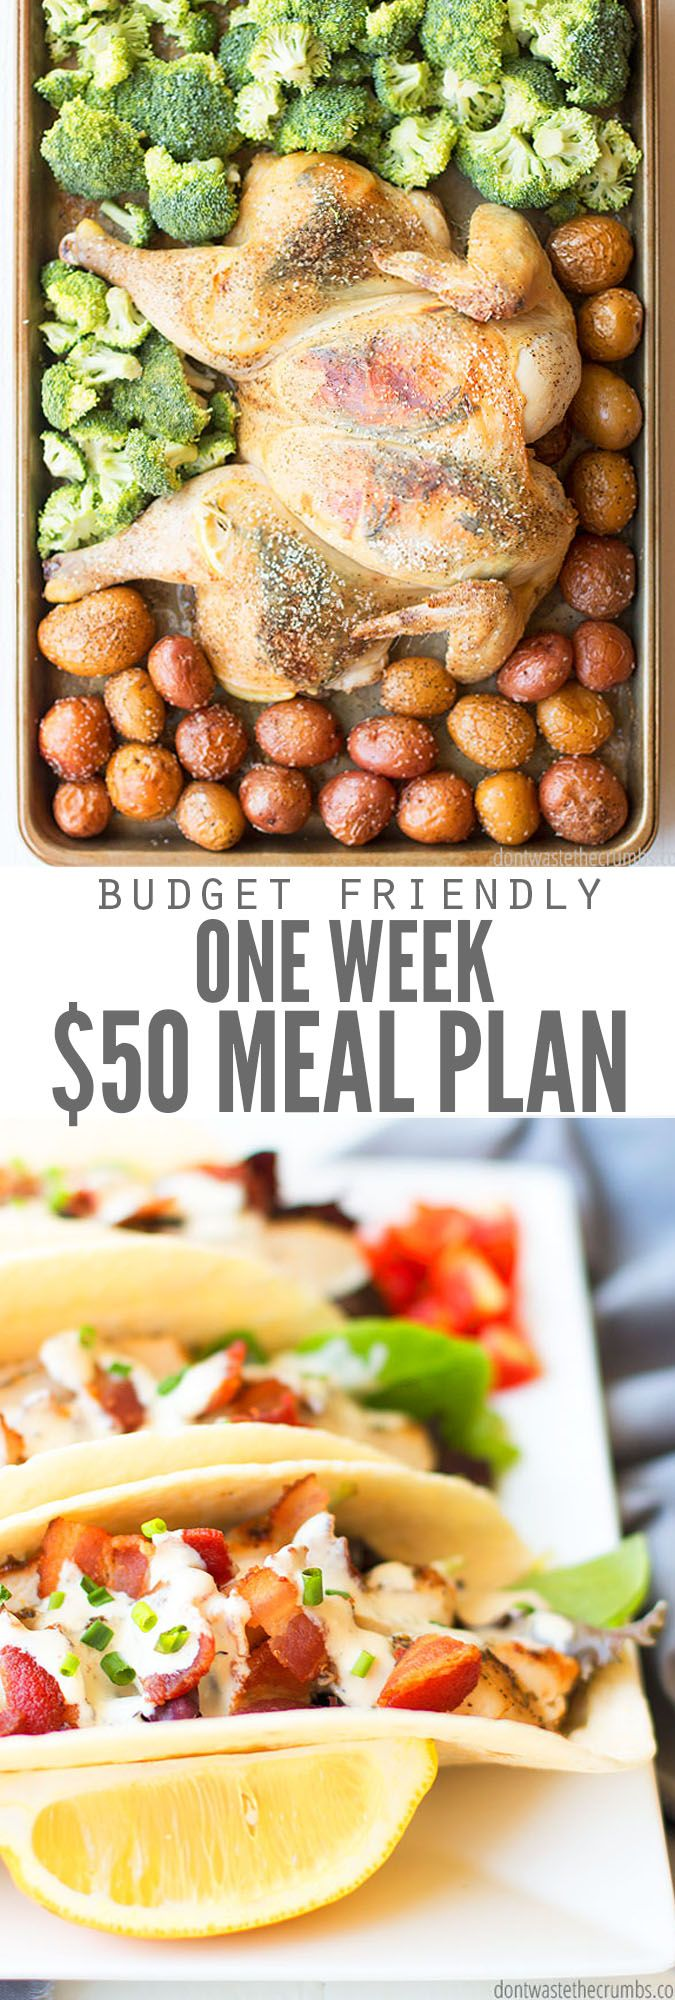 One Week $50 Meal Plan for a Family of Four images